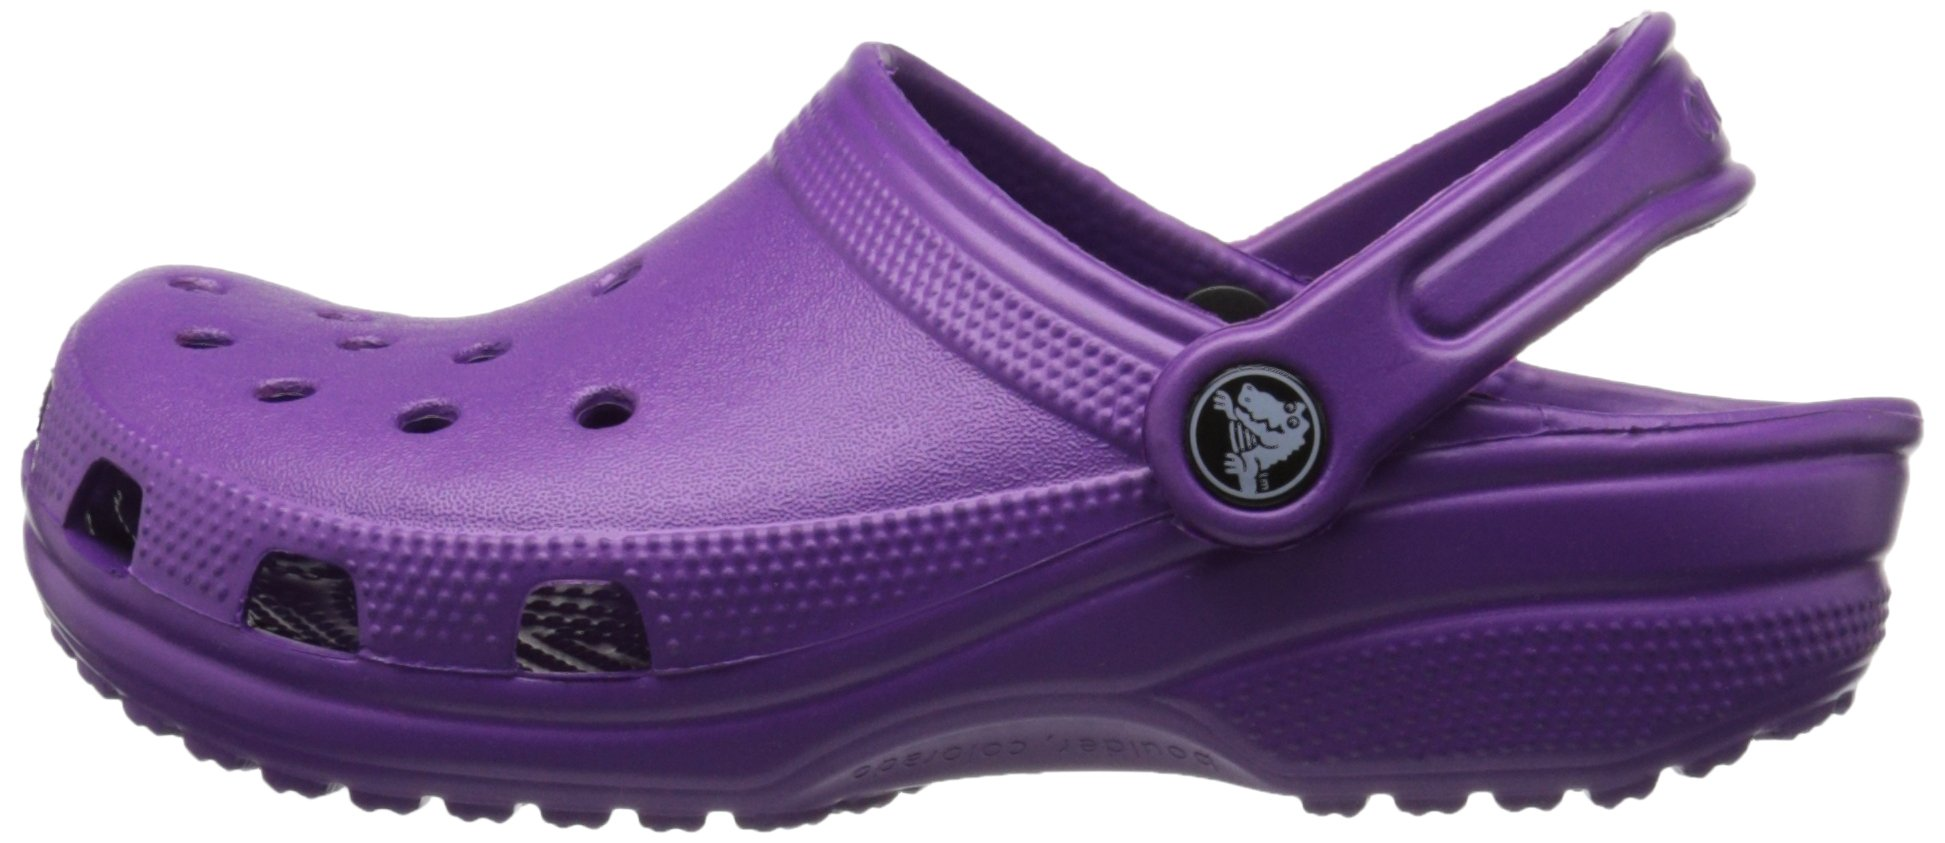 Crocs Kid's Classic Clog K Shoe, Amethyst, 7 M US Toddler by Crocs (Image #5)